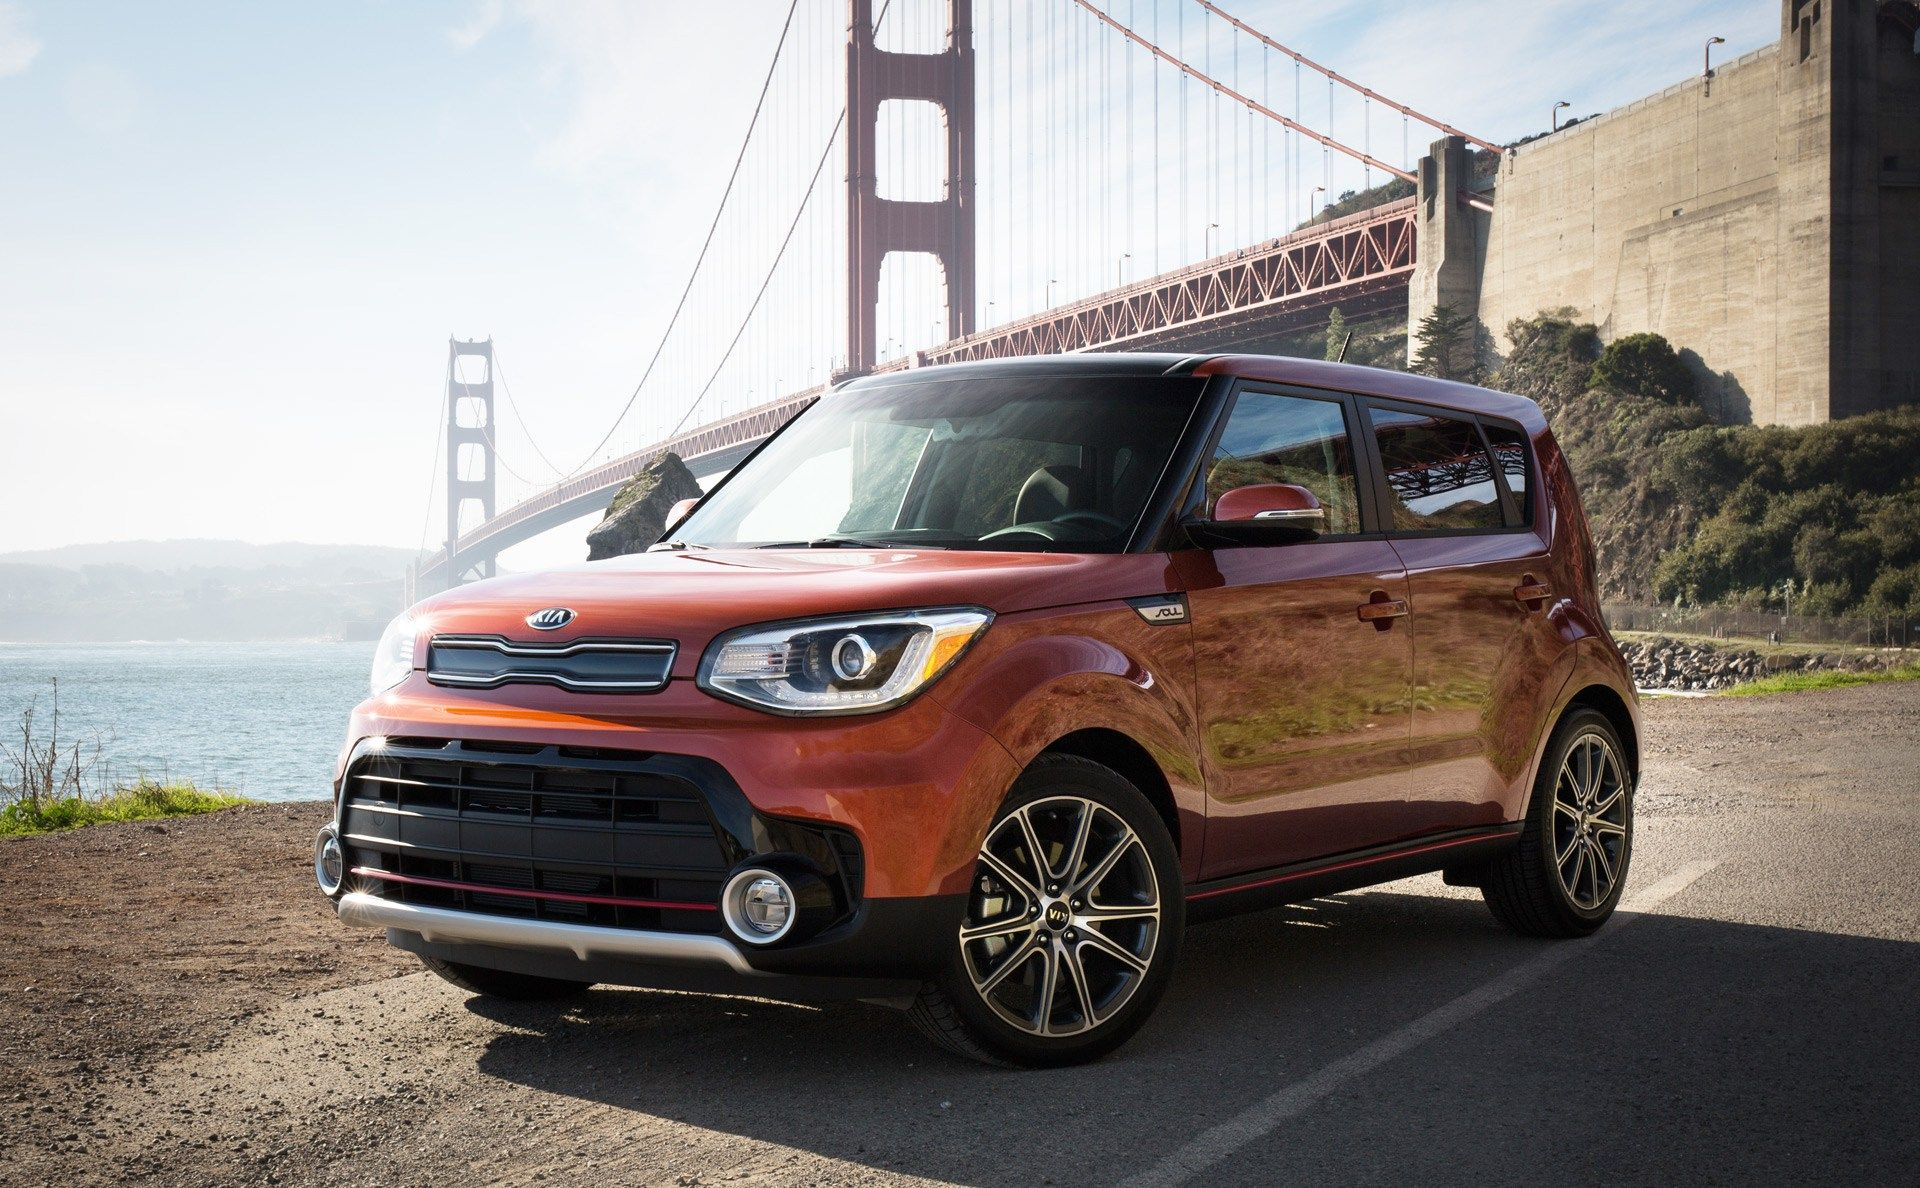 2020 Kia Soul Redesign Price And Changes Rumors New Car Rumor Kia Soul Kia New Cars